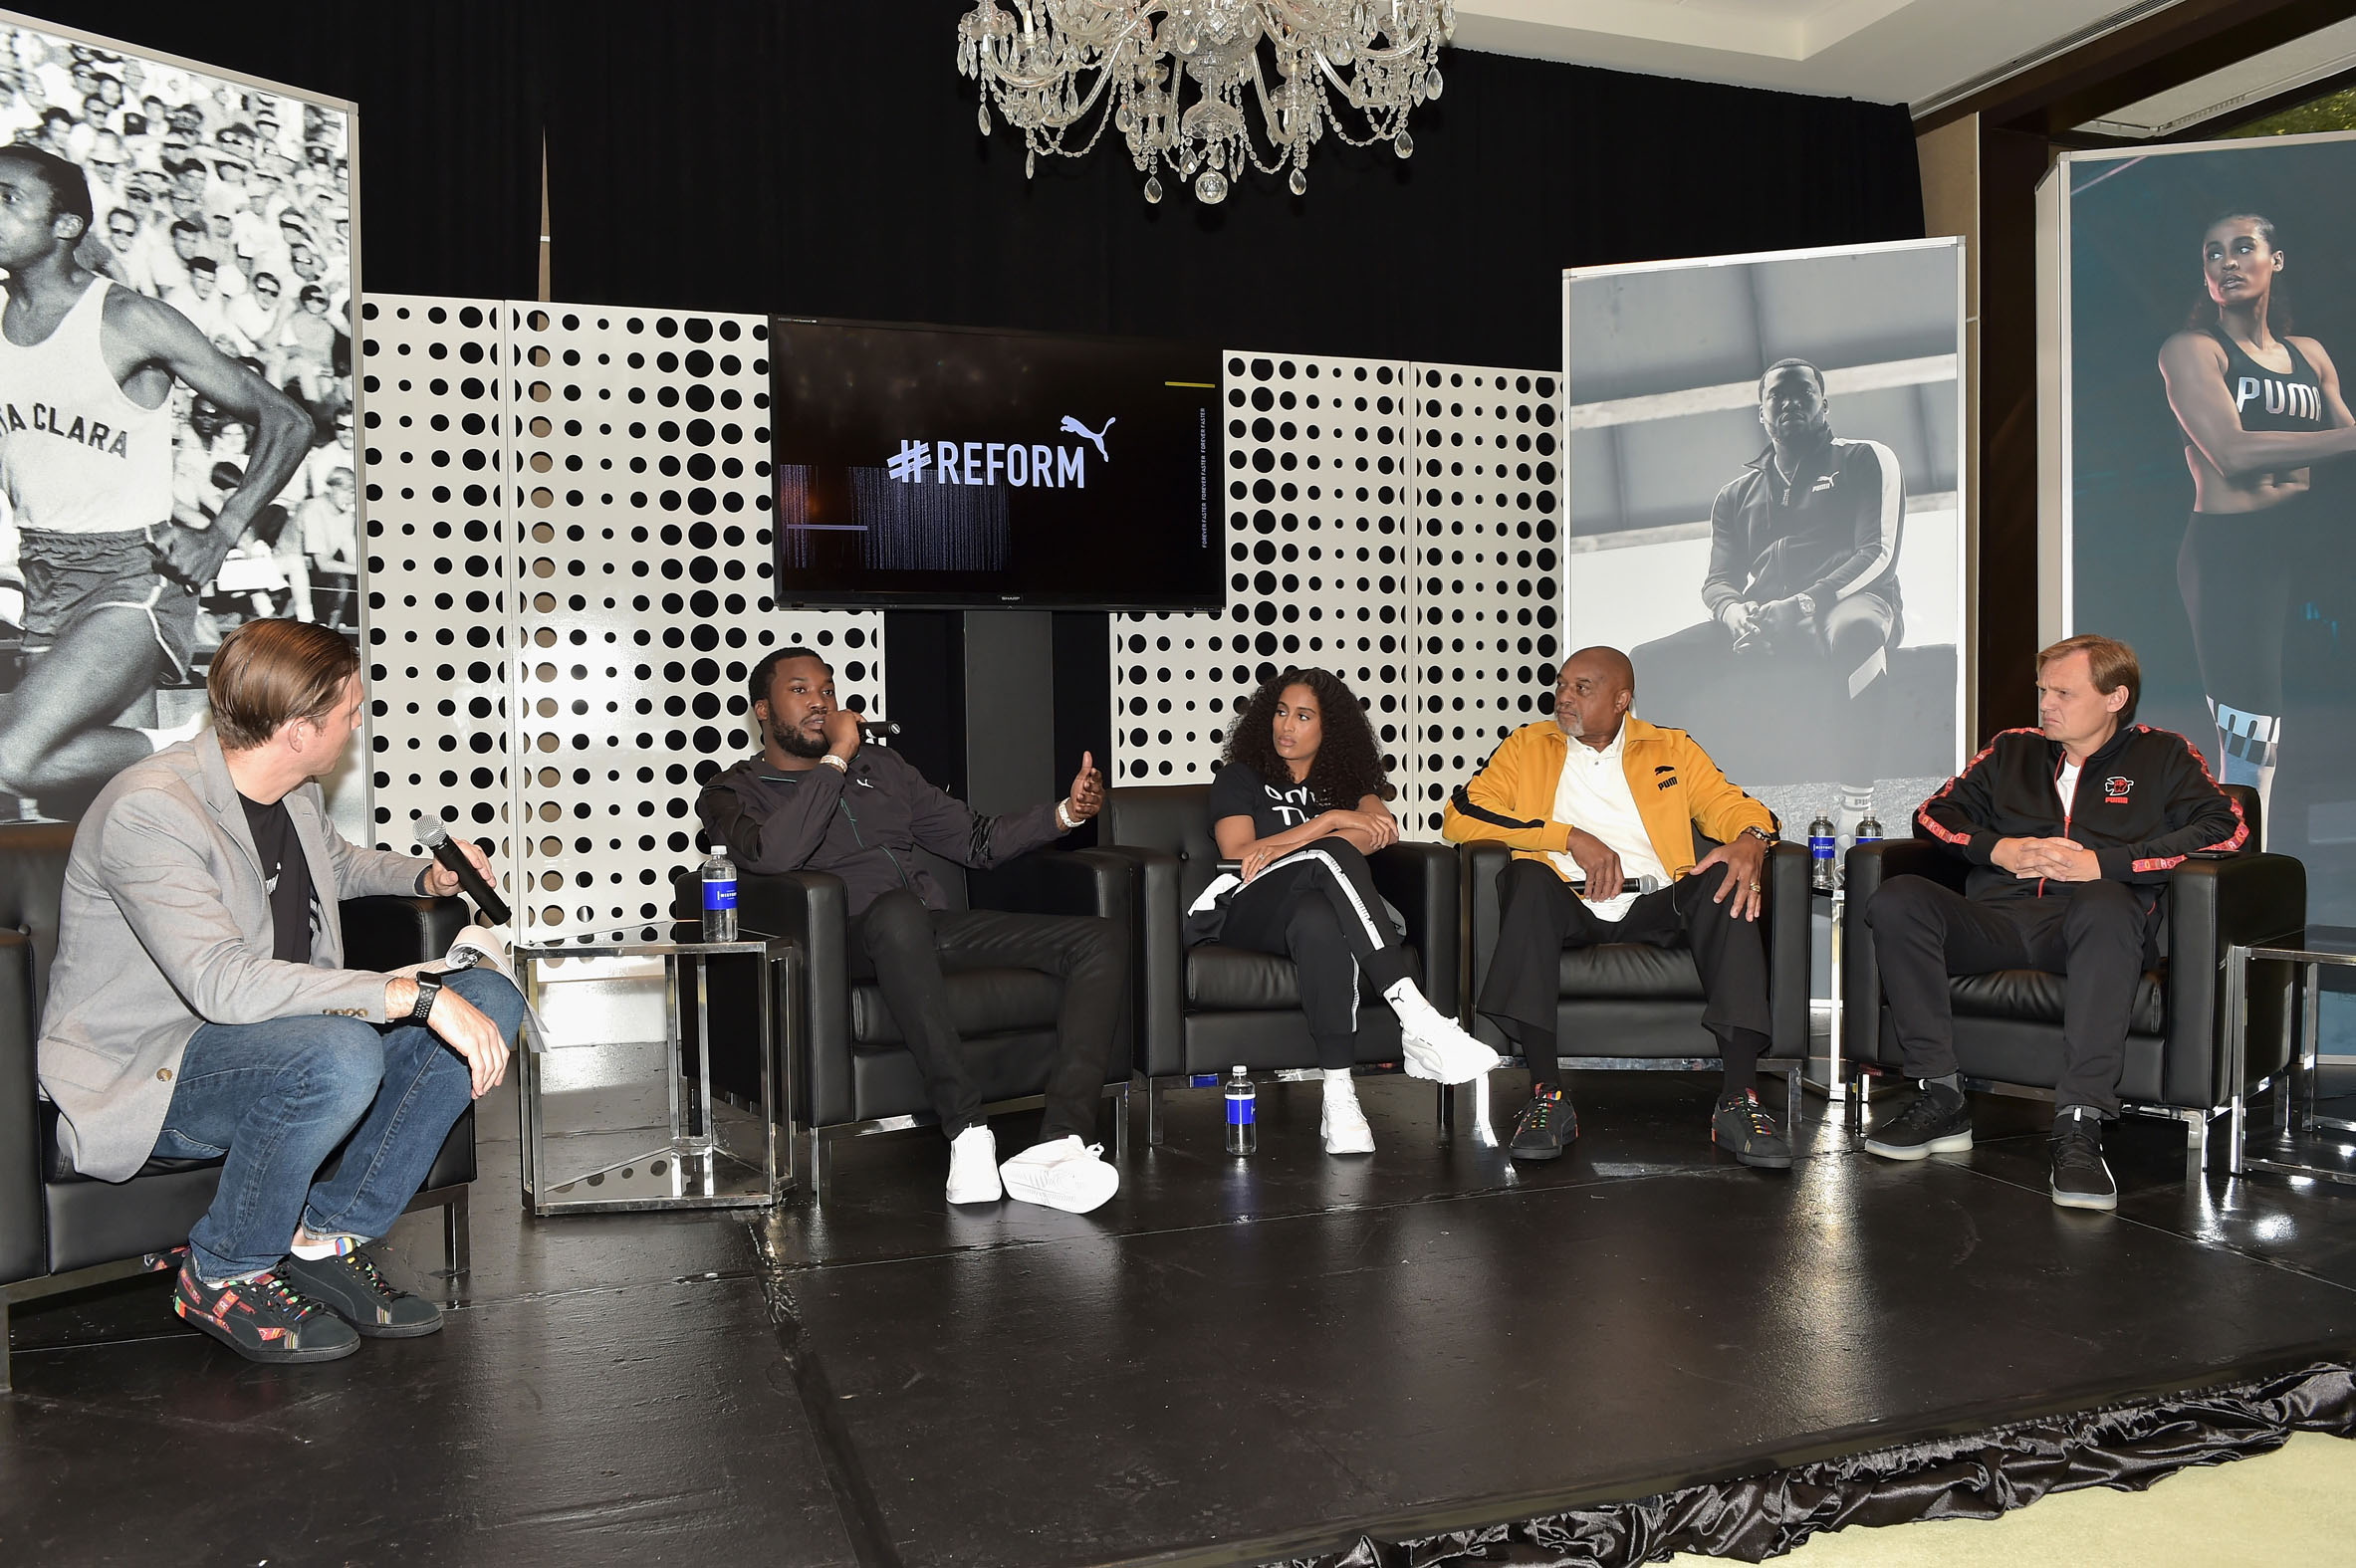 PUMA launches REFORM to drive social change